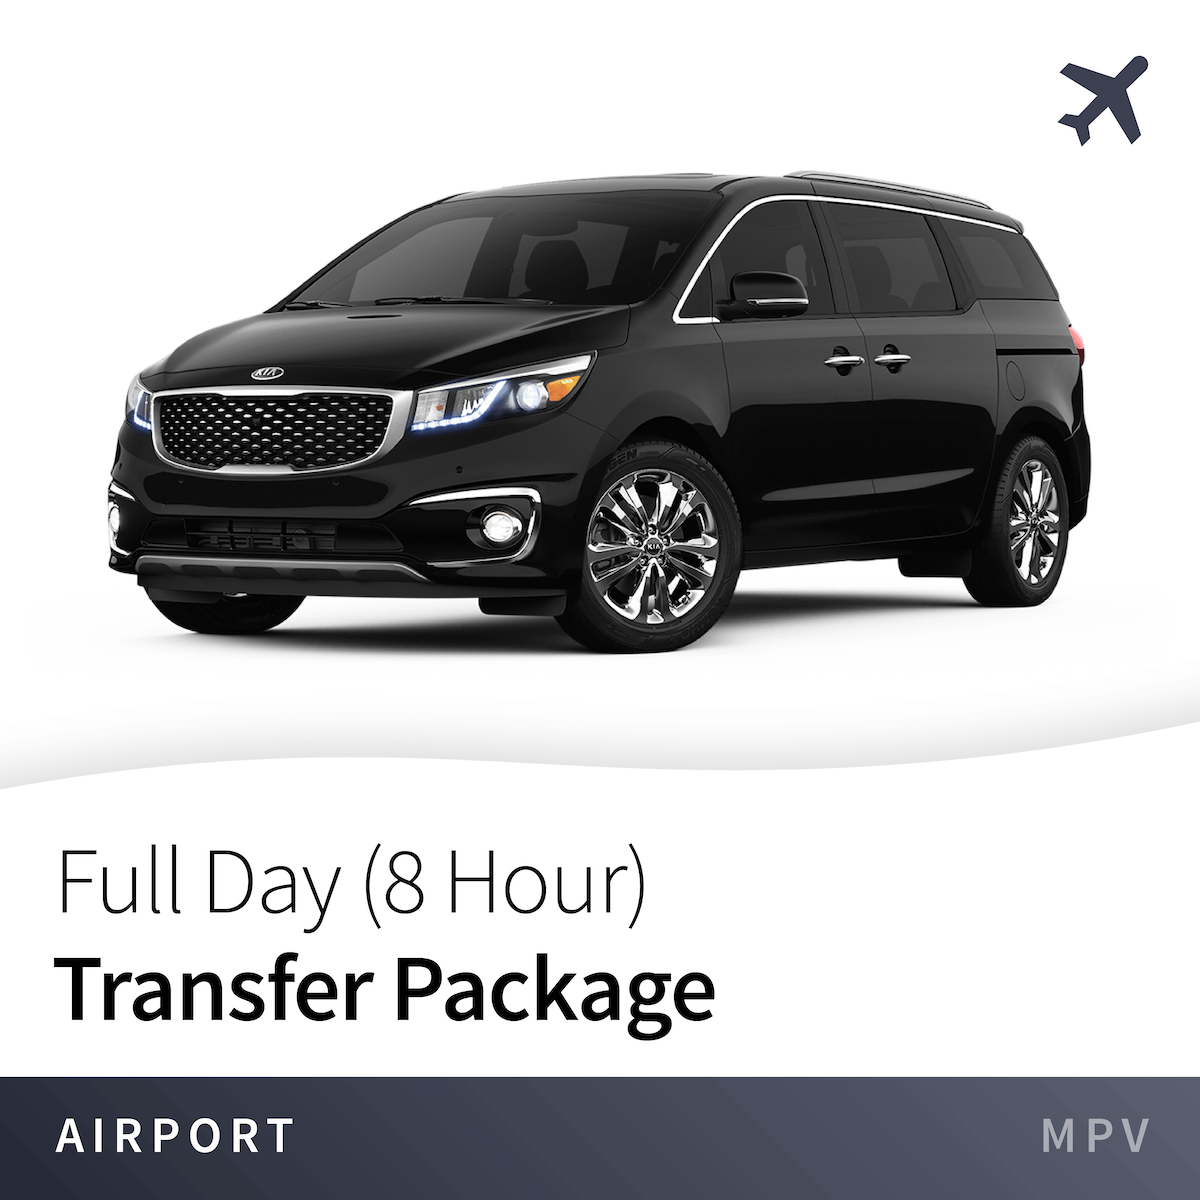 Full Day (8 Hour) Transfer Package From Airport - MPV 3